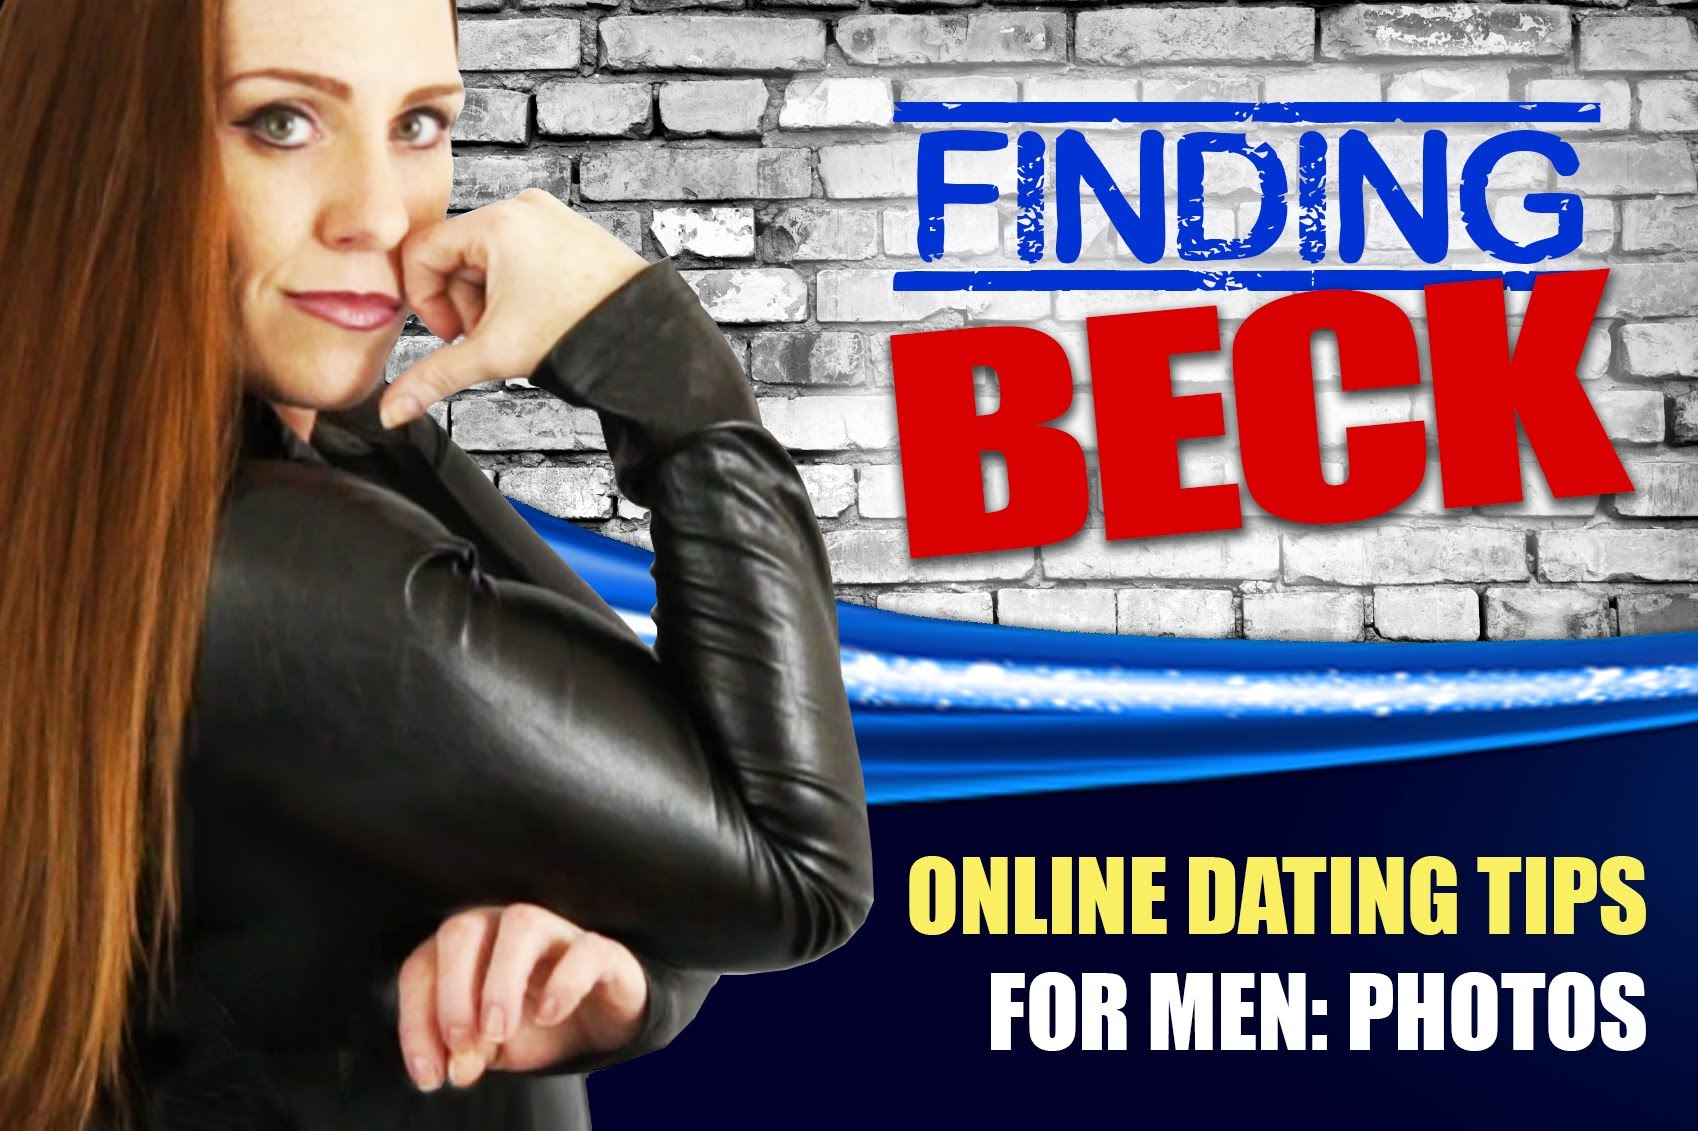 online dating tips and advice Kimberly koehler shares insight on the online dating scene and advice for those looking for love online.